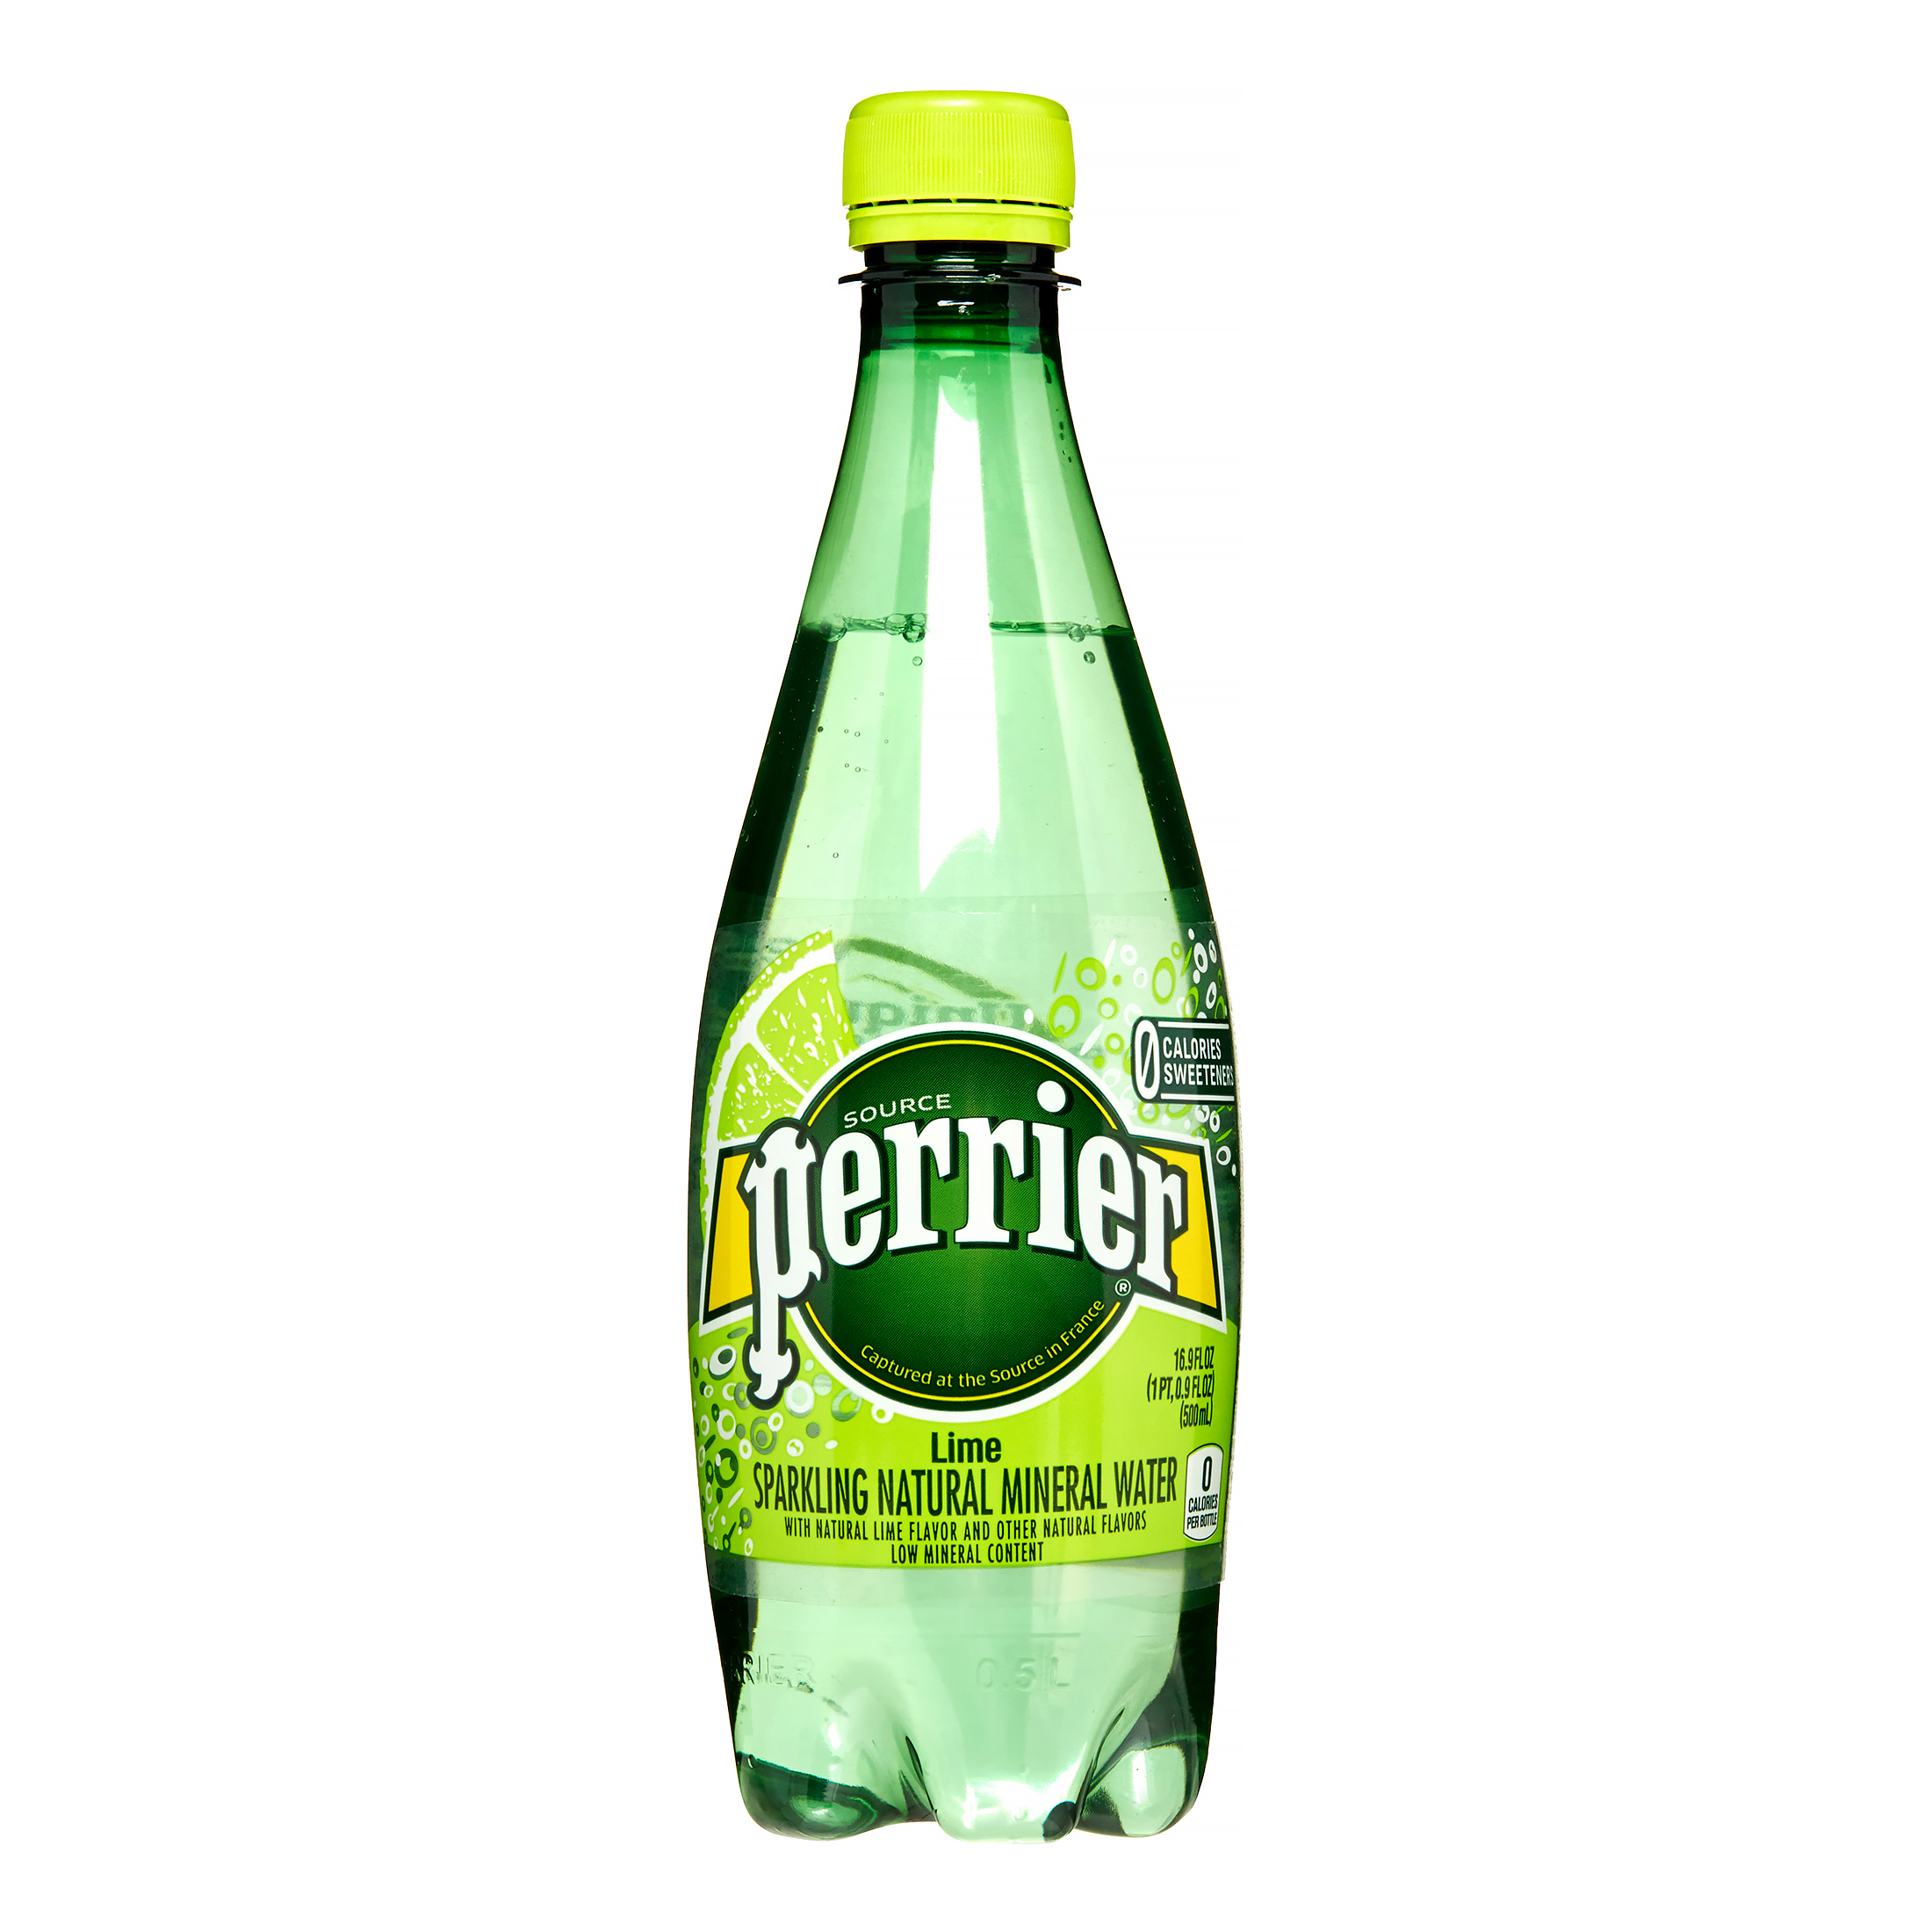 Perrier Sparkling Natural Mineral Water, Lime, 16.9 Fl Oz, 24 Count by Nestle Waters North America